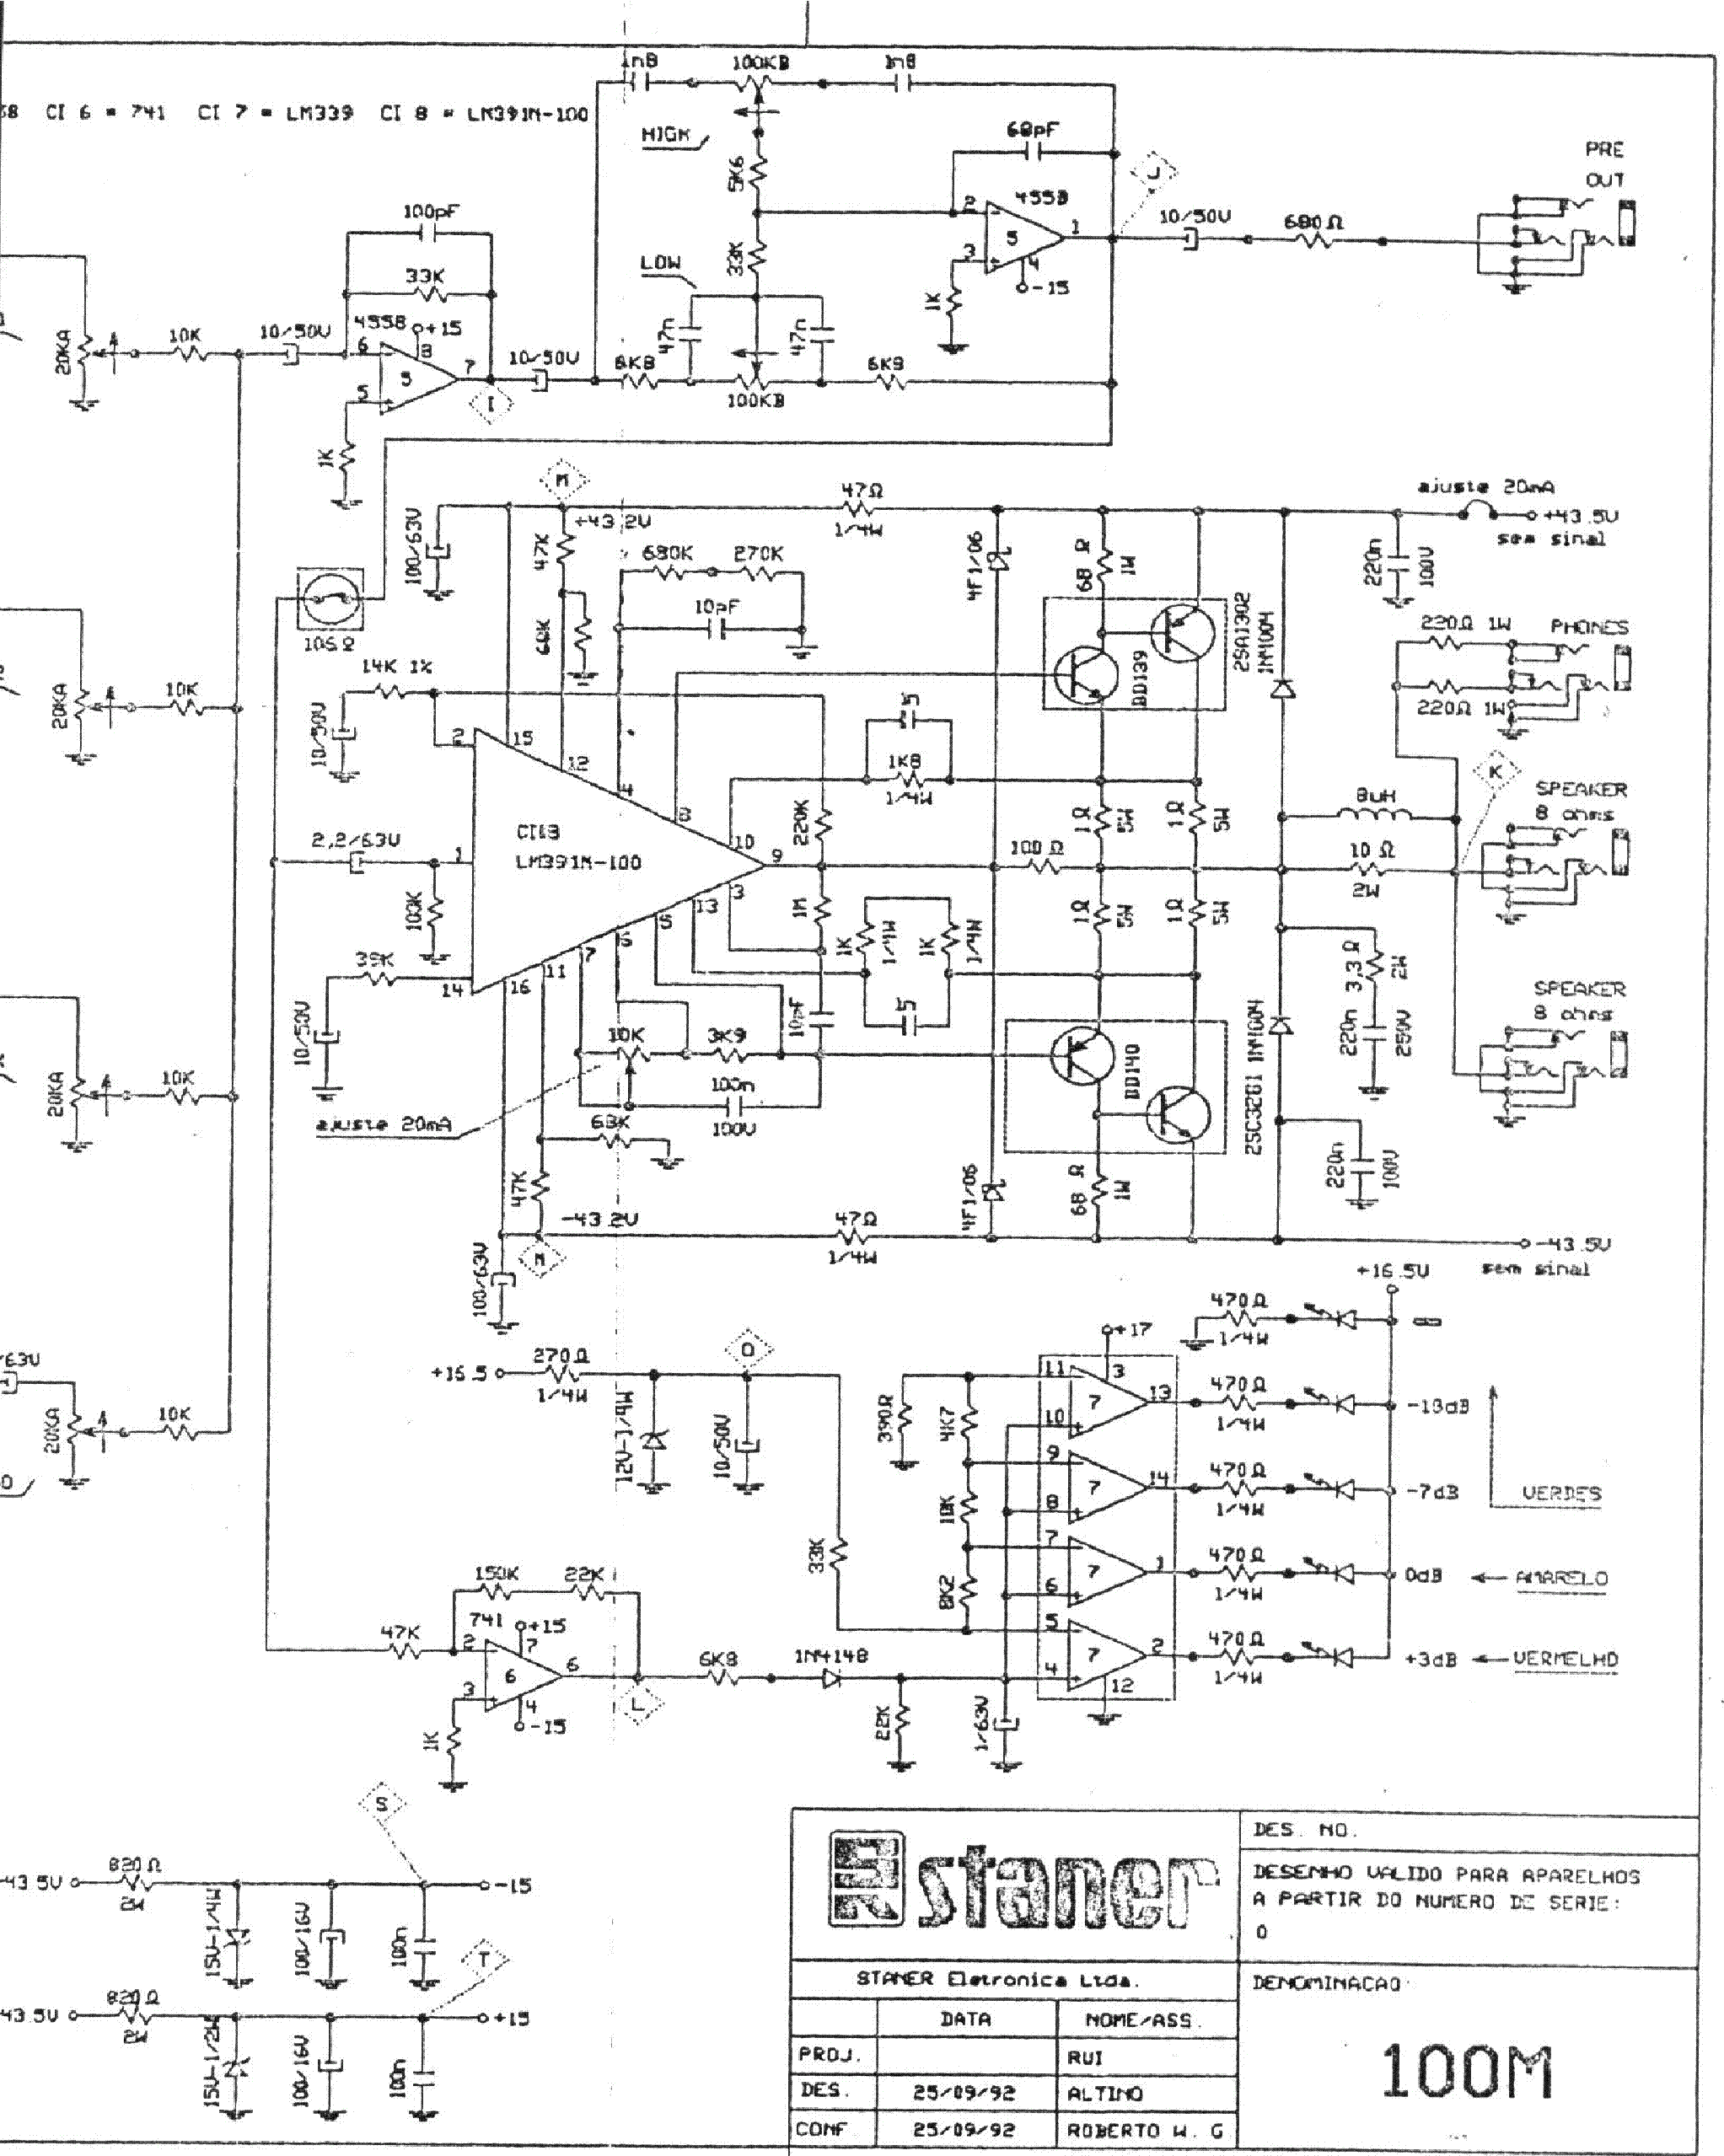 Pcb Layout Staner Amplifier